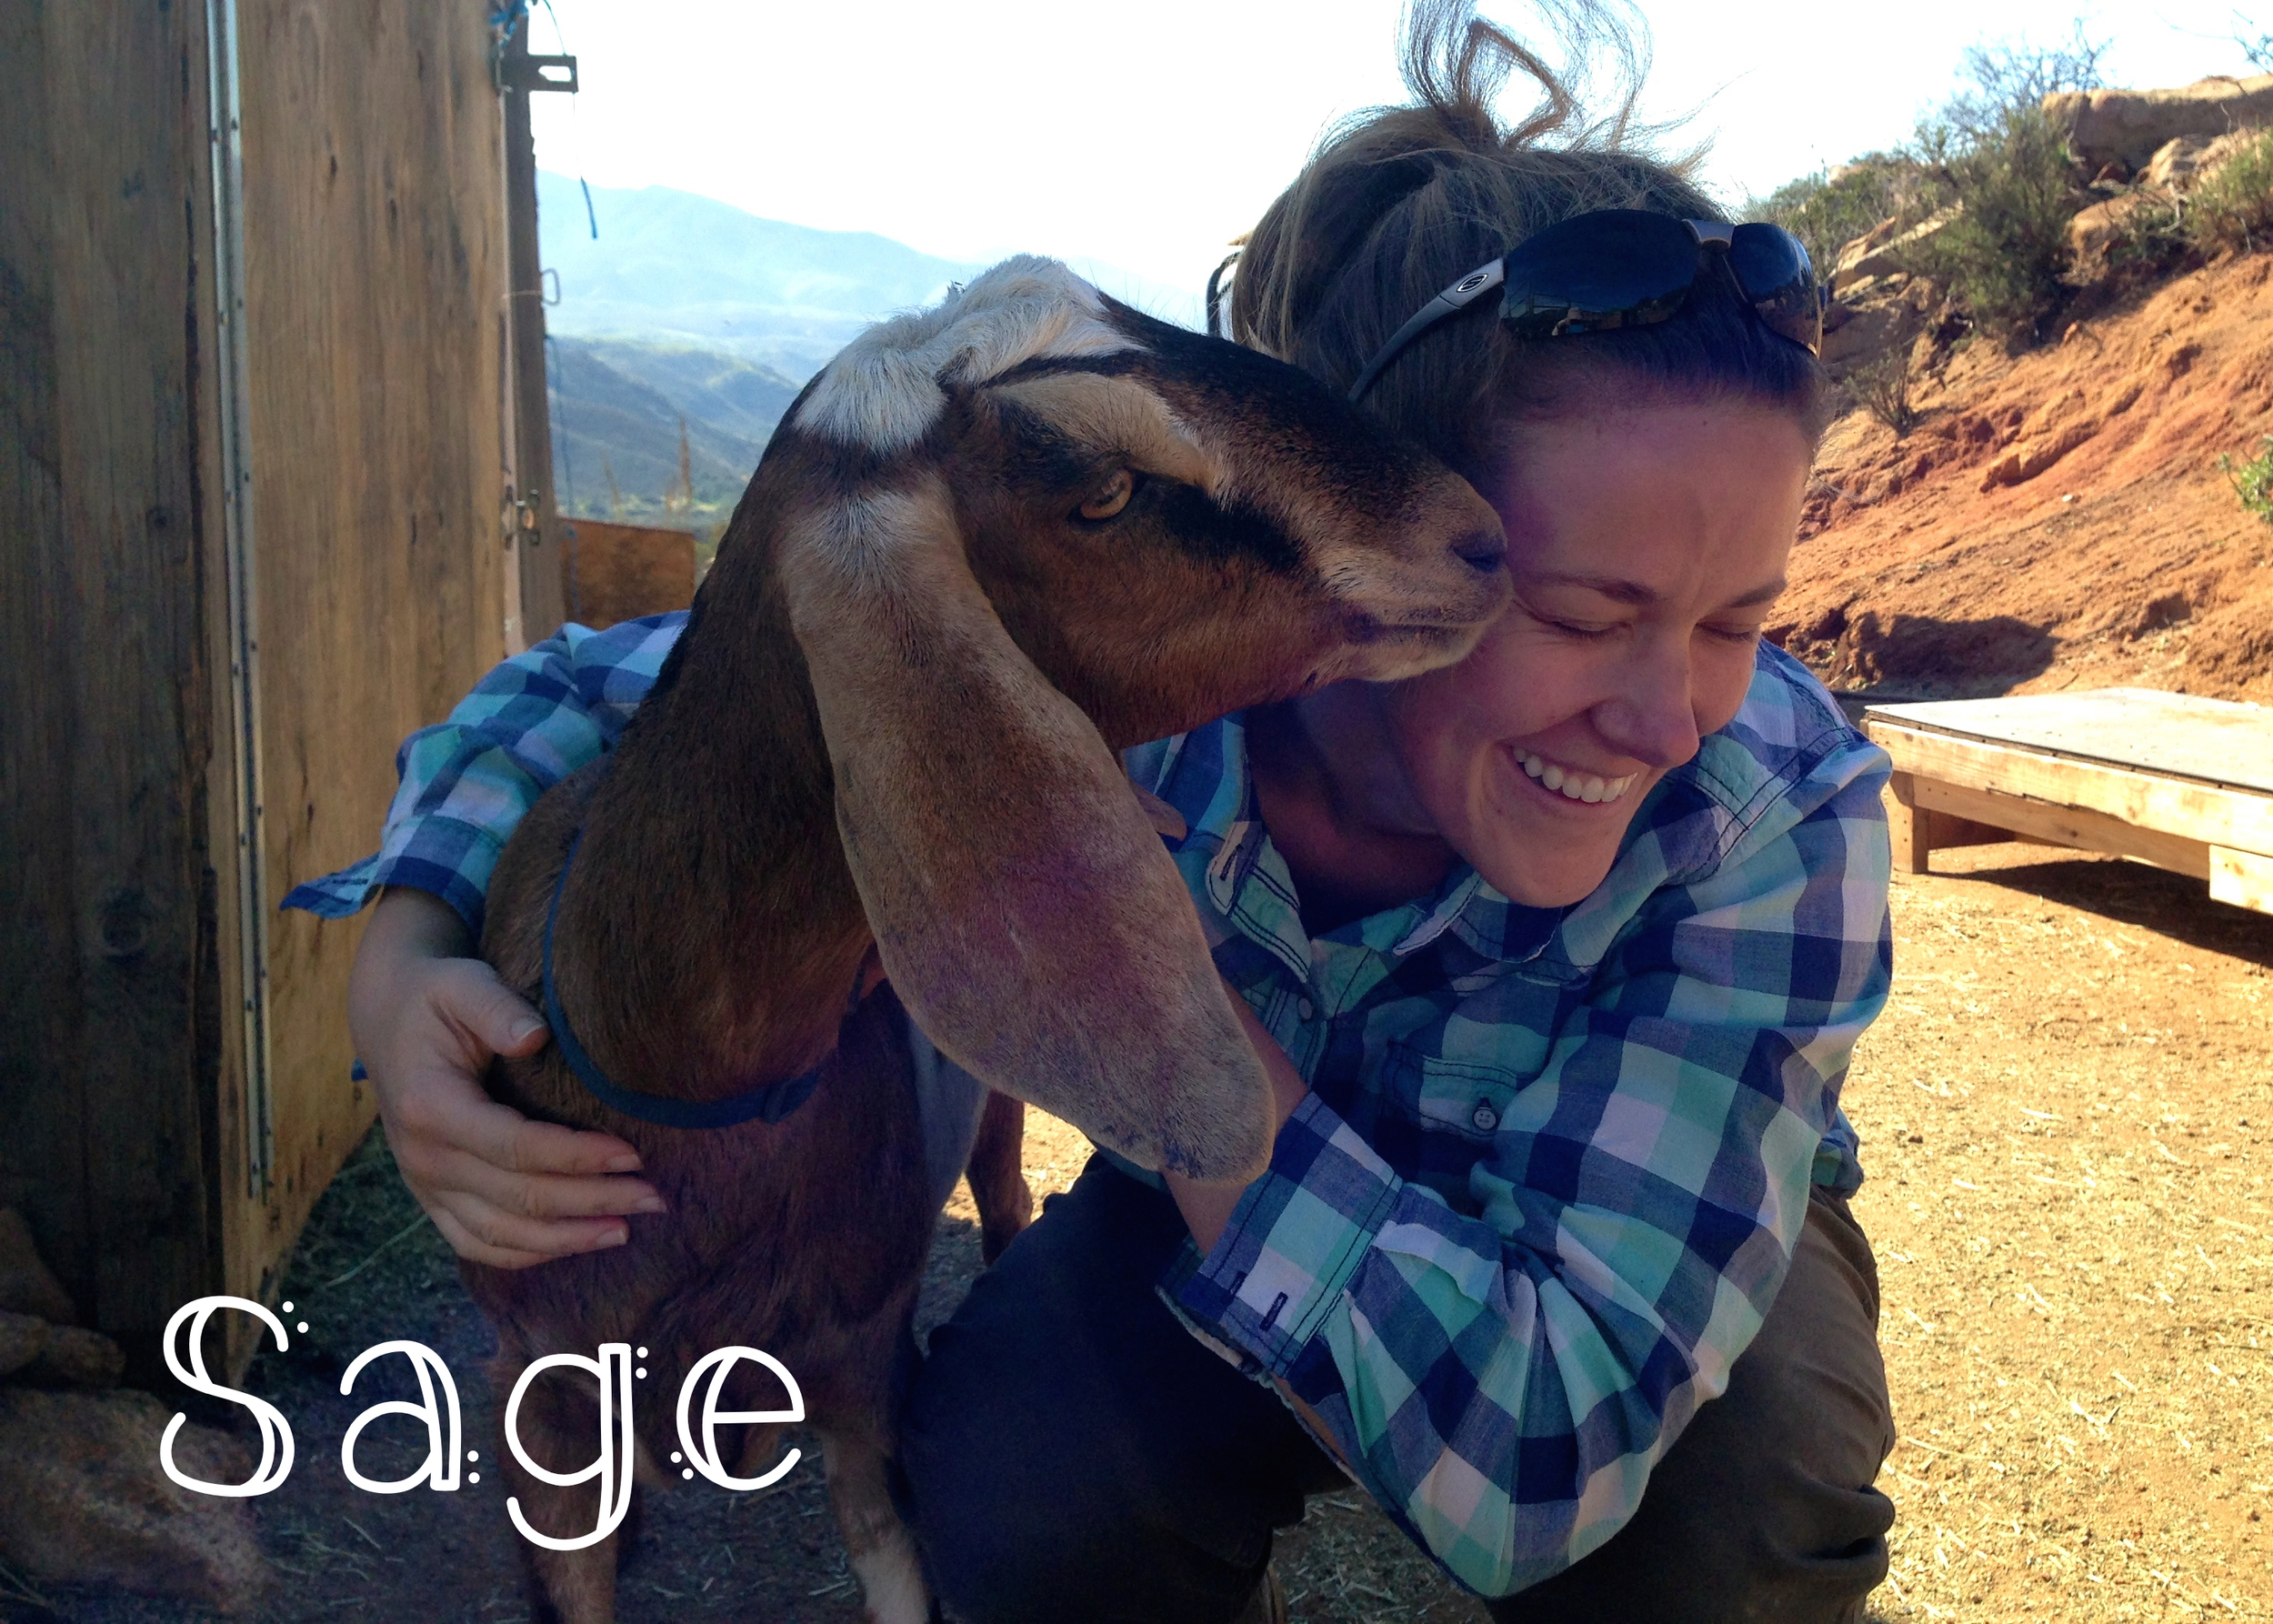 Sage – Sage is a yearling doe who hasn't been bred yet. Sage takes after her mom, Bree, quite a bit! She is sweet and has delicate features. Sage has already learned how to get up on the milk stand and stand quietly, and I can't wait to milk her next year.